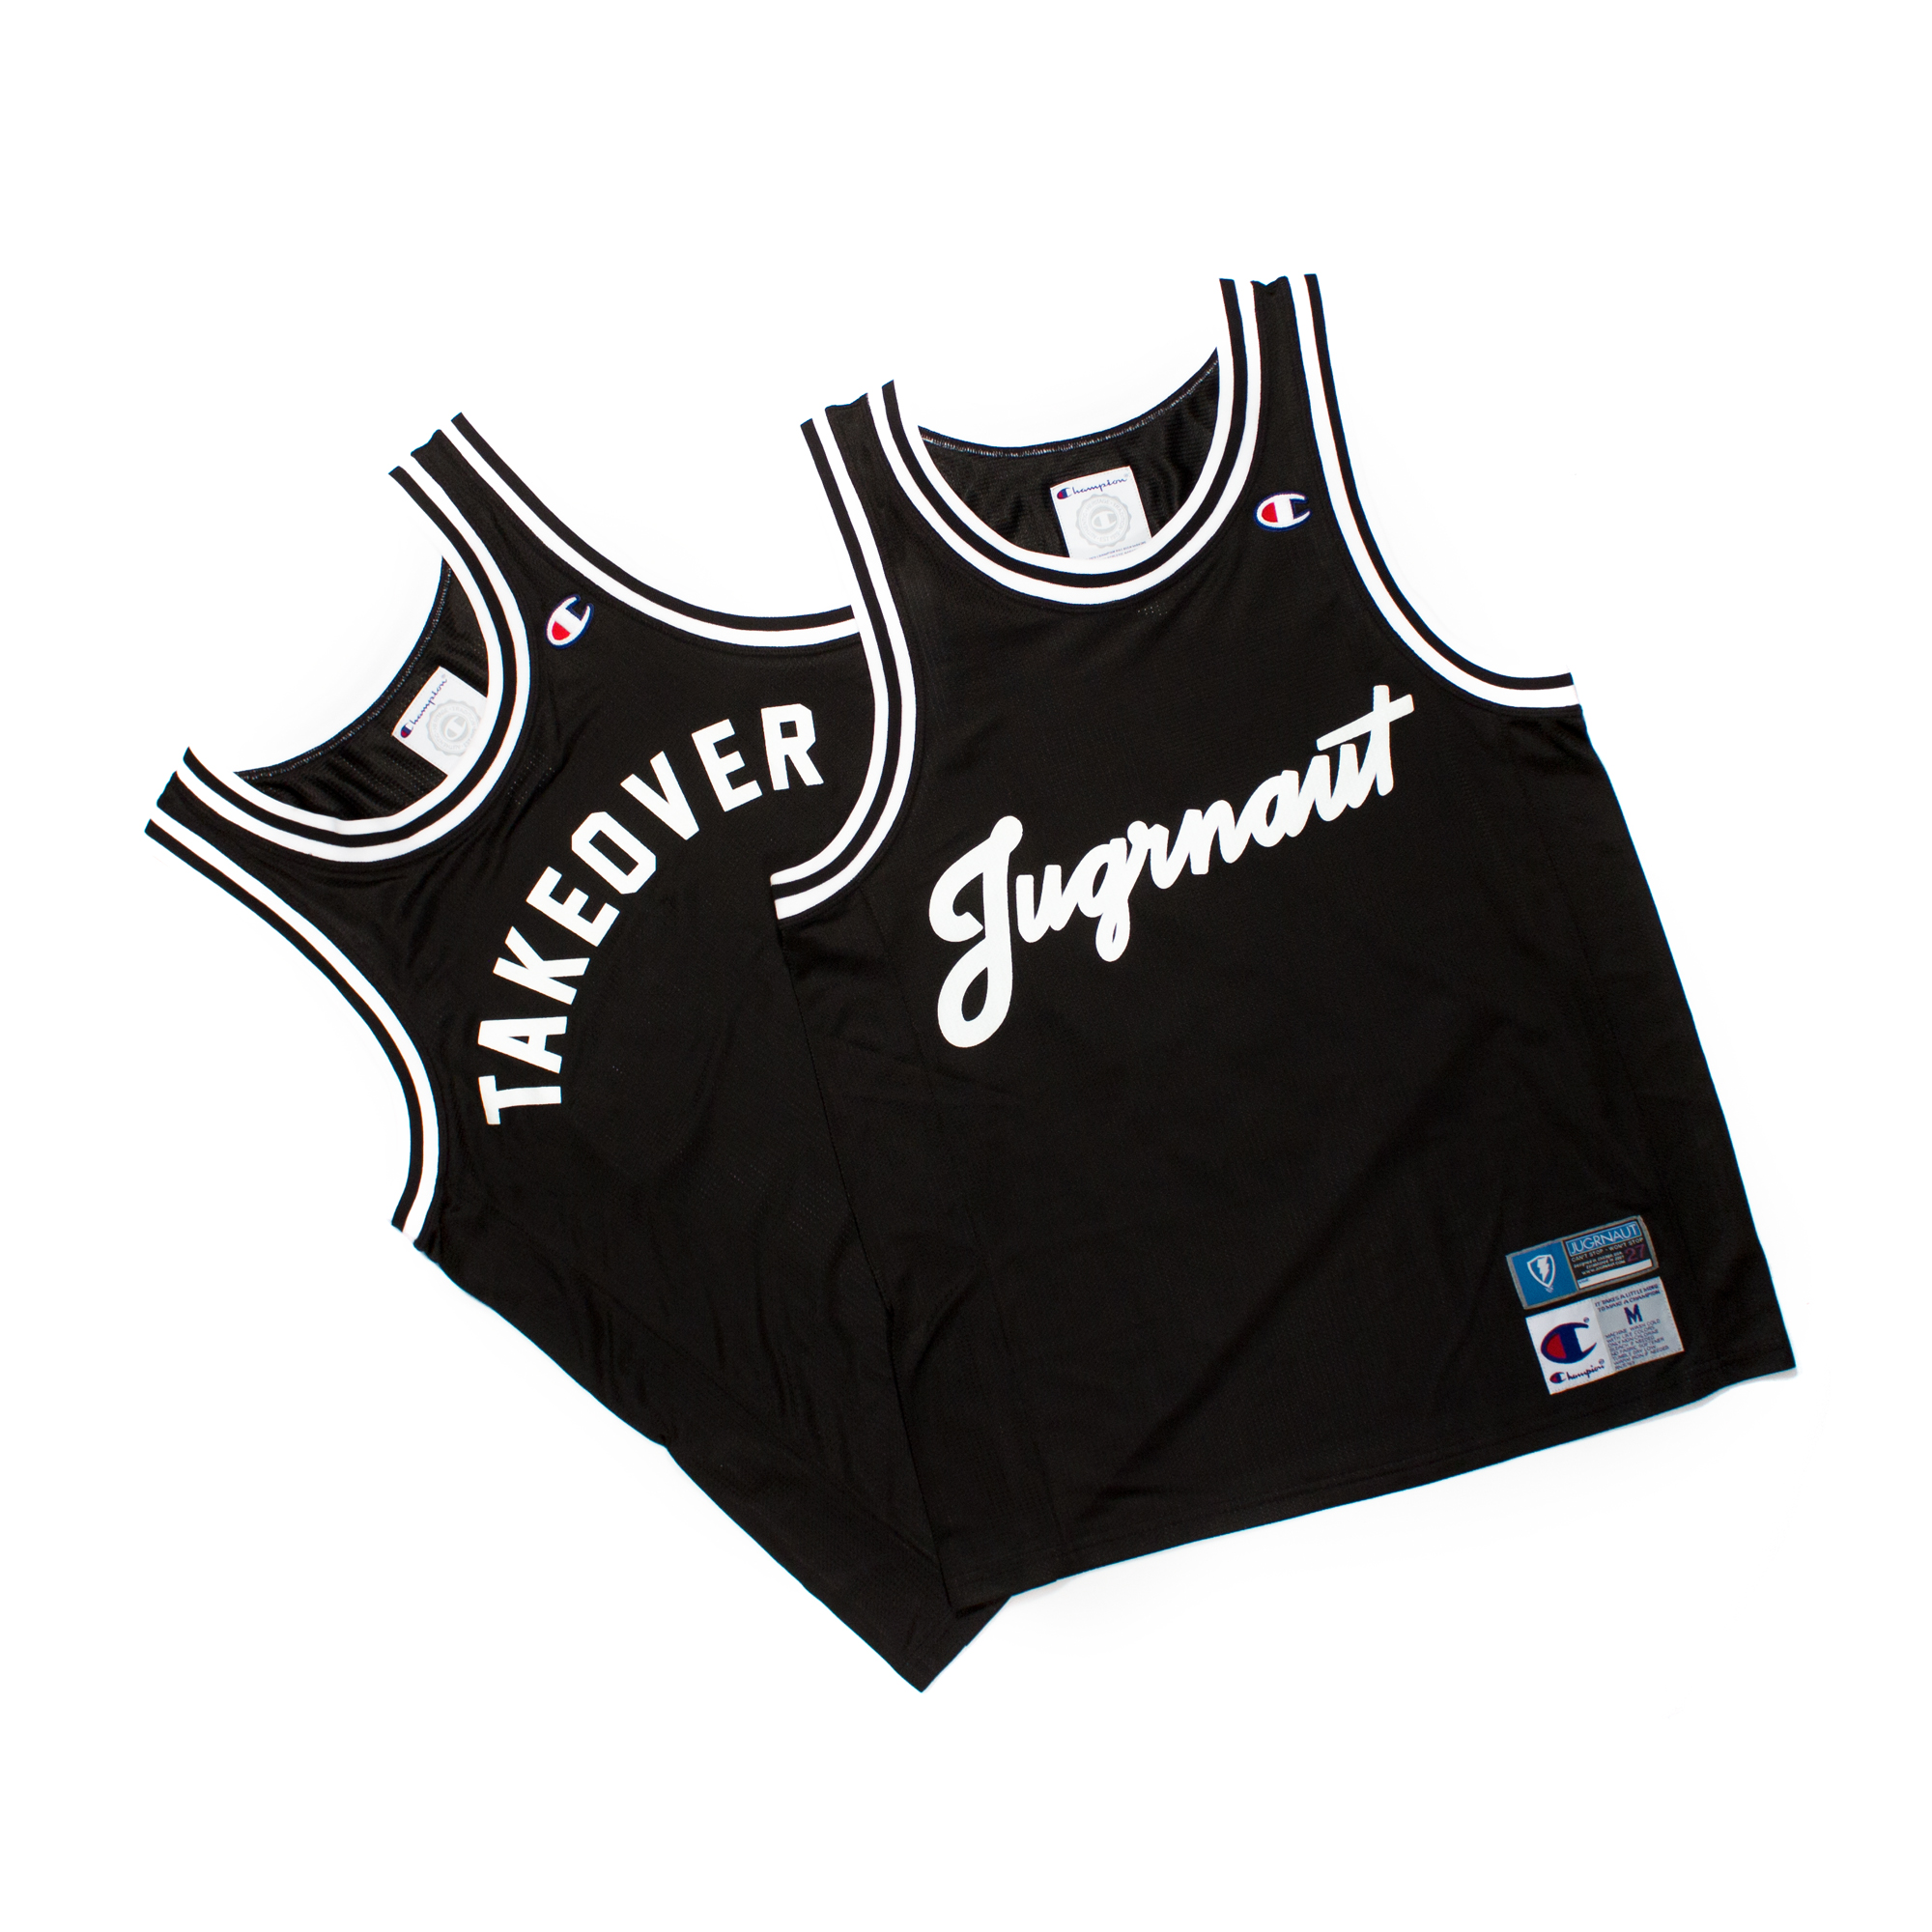 JUGRNAUT_CHAMPION_BB_JERSEYS